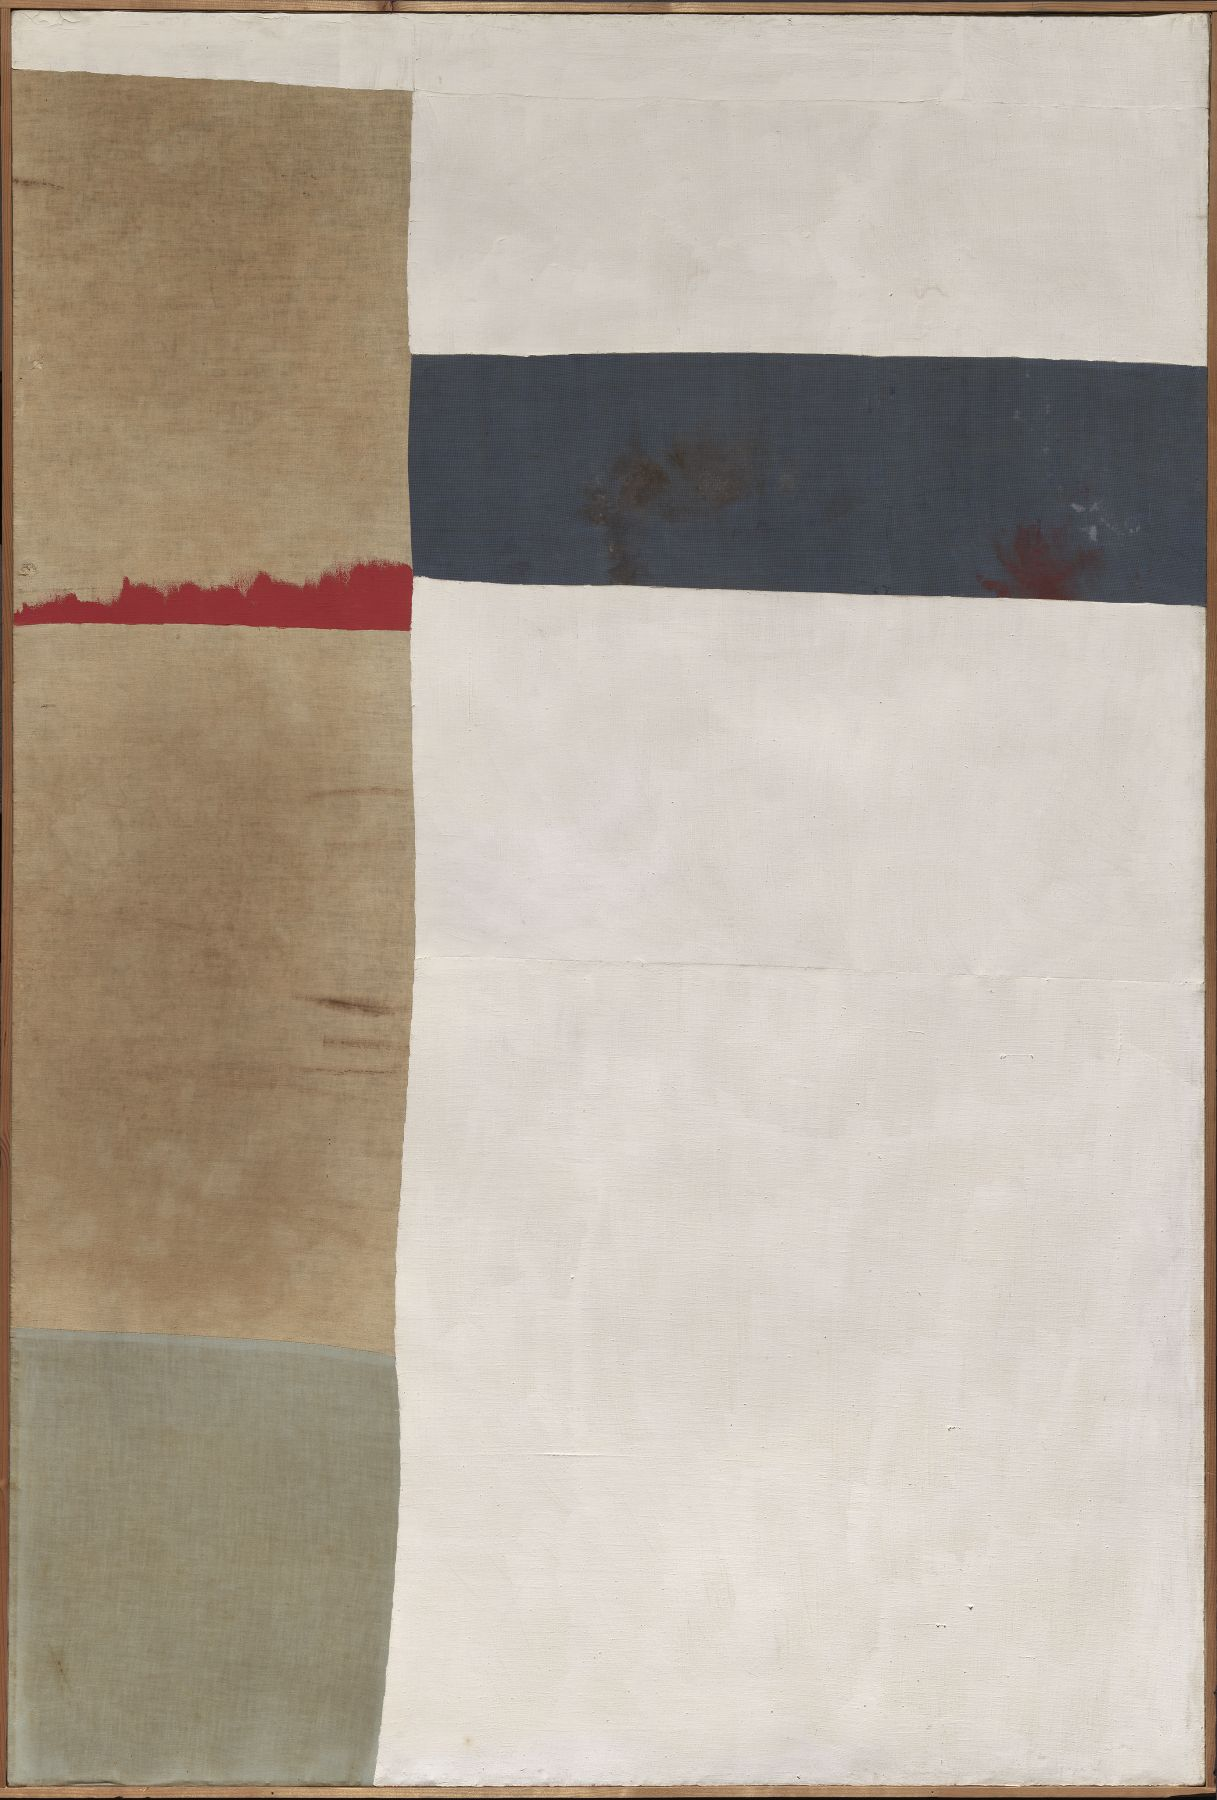 Nuvolo (Giorgio Ascani). Composition. 1957. Oil and fabric on canvas, 171.5 by 116 cm (67½ by 45⅝ in.). Museum of Fine Arts, Boston. Gift of Mrs. Peggy Guggenheim.